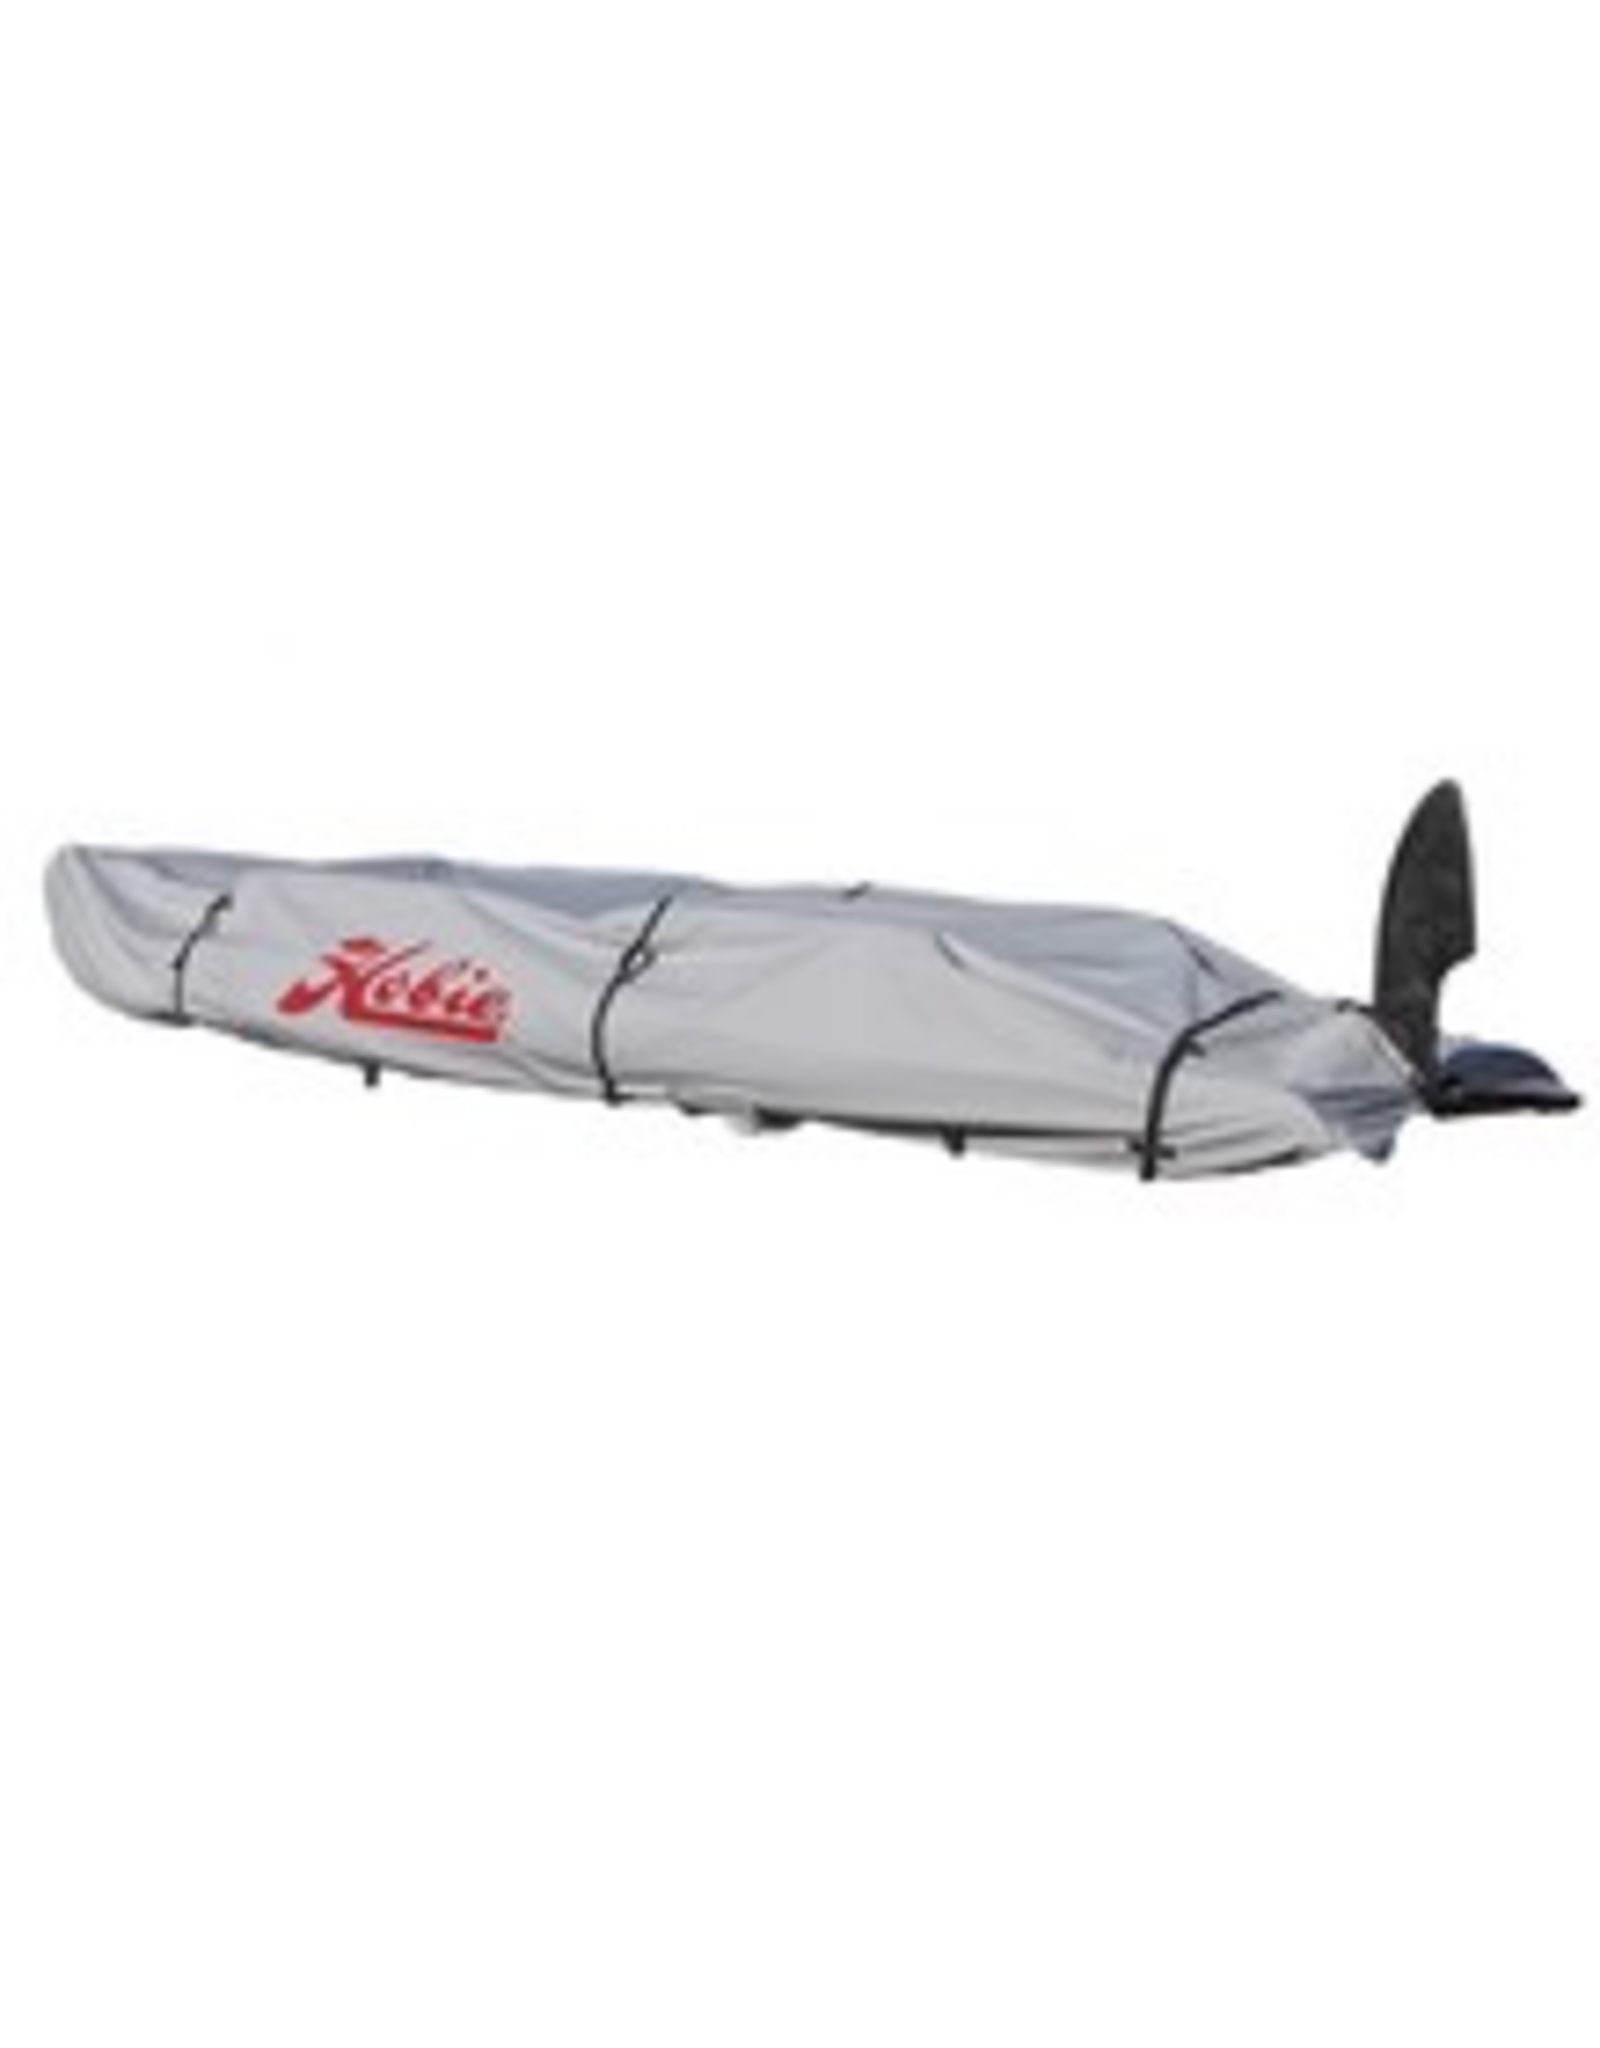 Hobie Hobie Kayak Cover for Hobie Adventure Island Kayaks 2015+